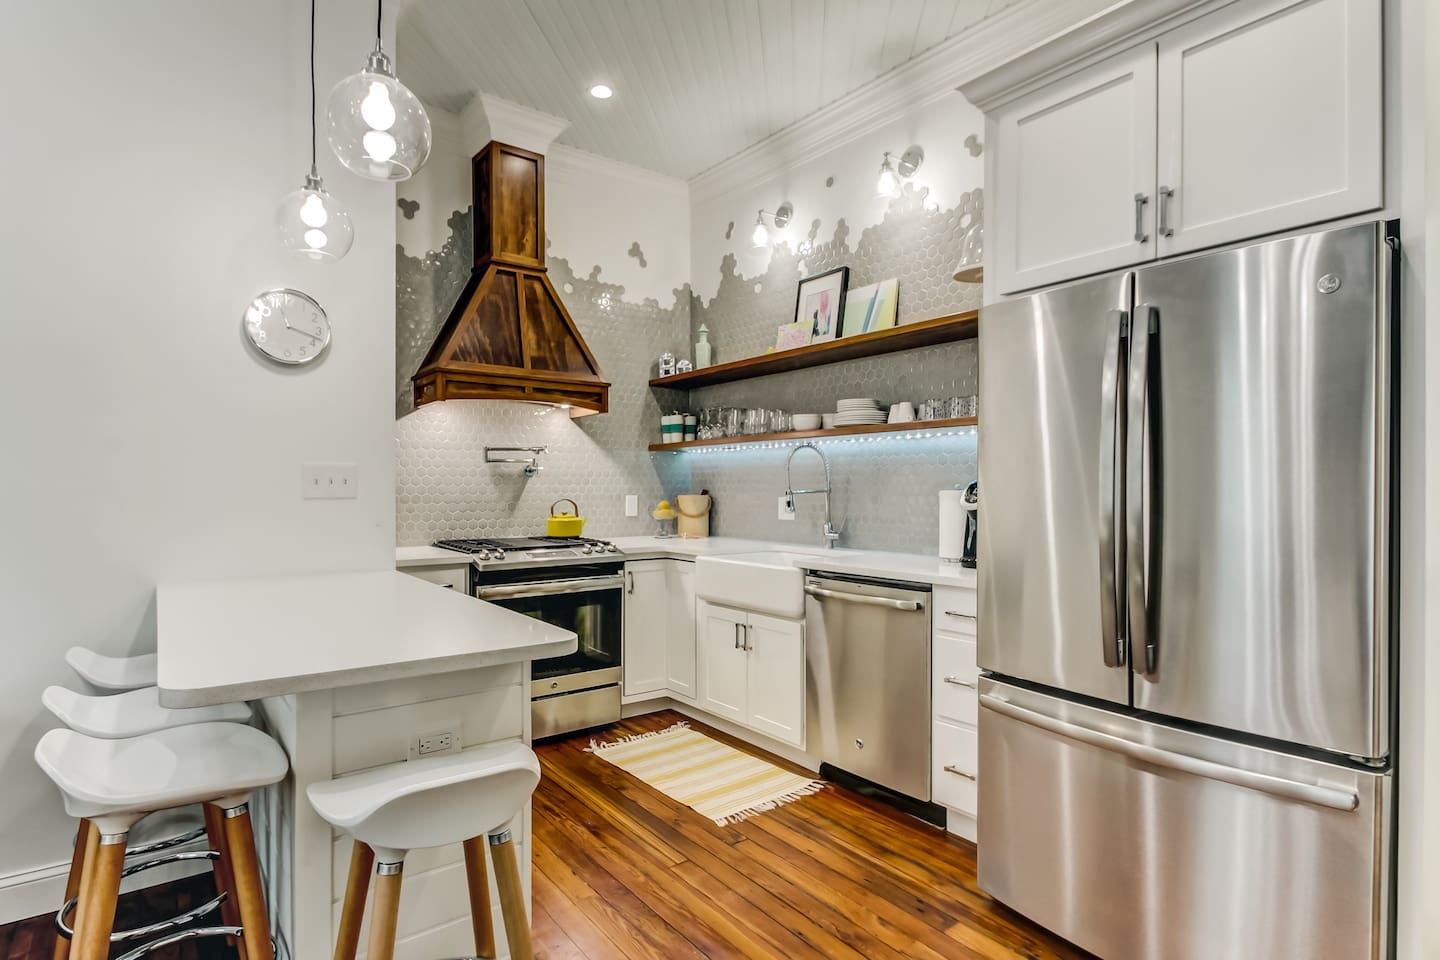 Bright and modern kitchen is equipped with high end appliances, farmhouse sink, gas stove, all the essentials, and then some!